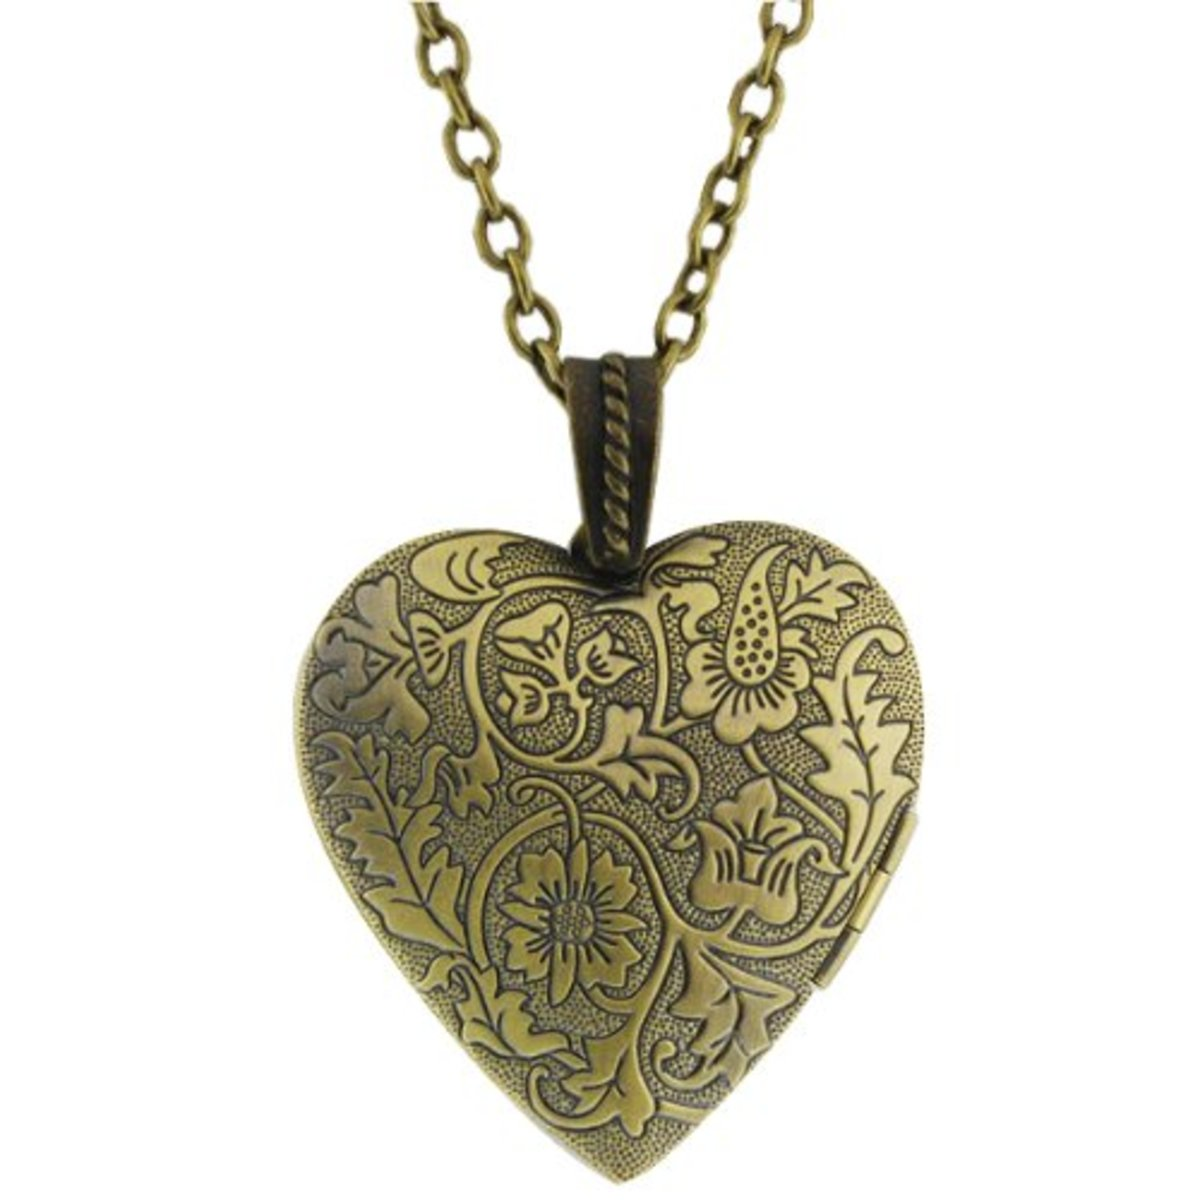 Best Romantic Heart Lockets